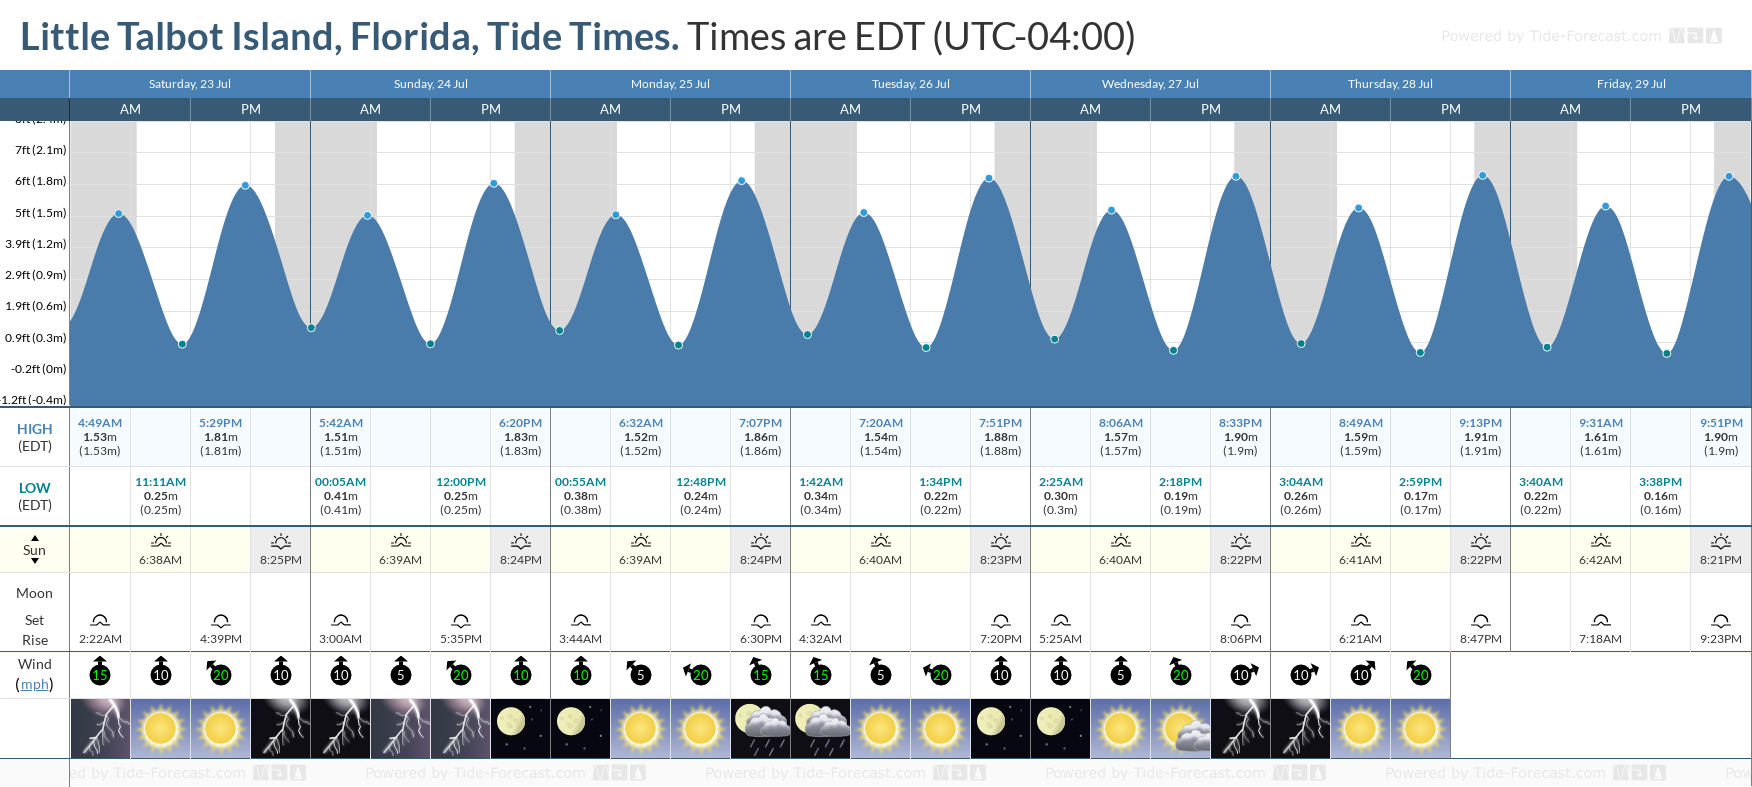 Little Talbot Island, Florida Tide Chart including high and low tide tide times for the next 7 days